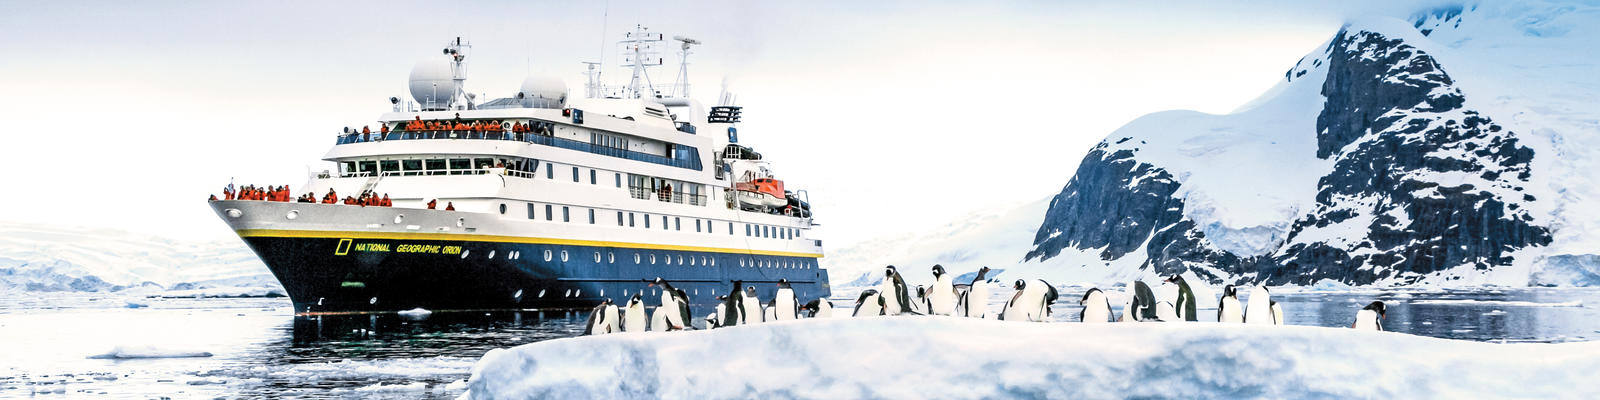 National Geographic Orion in Antarctica (Photo: Lindblad Expeditions)